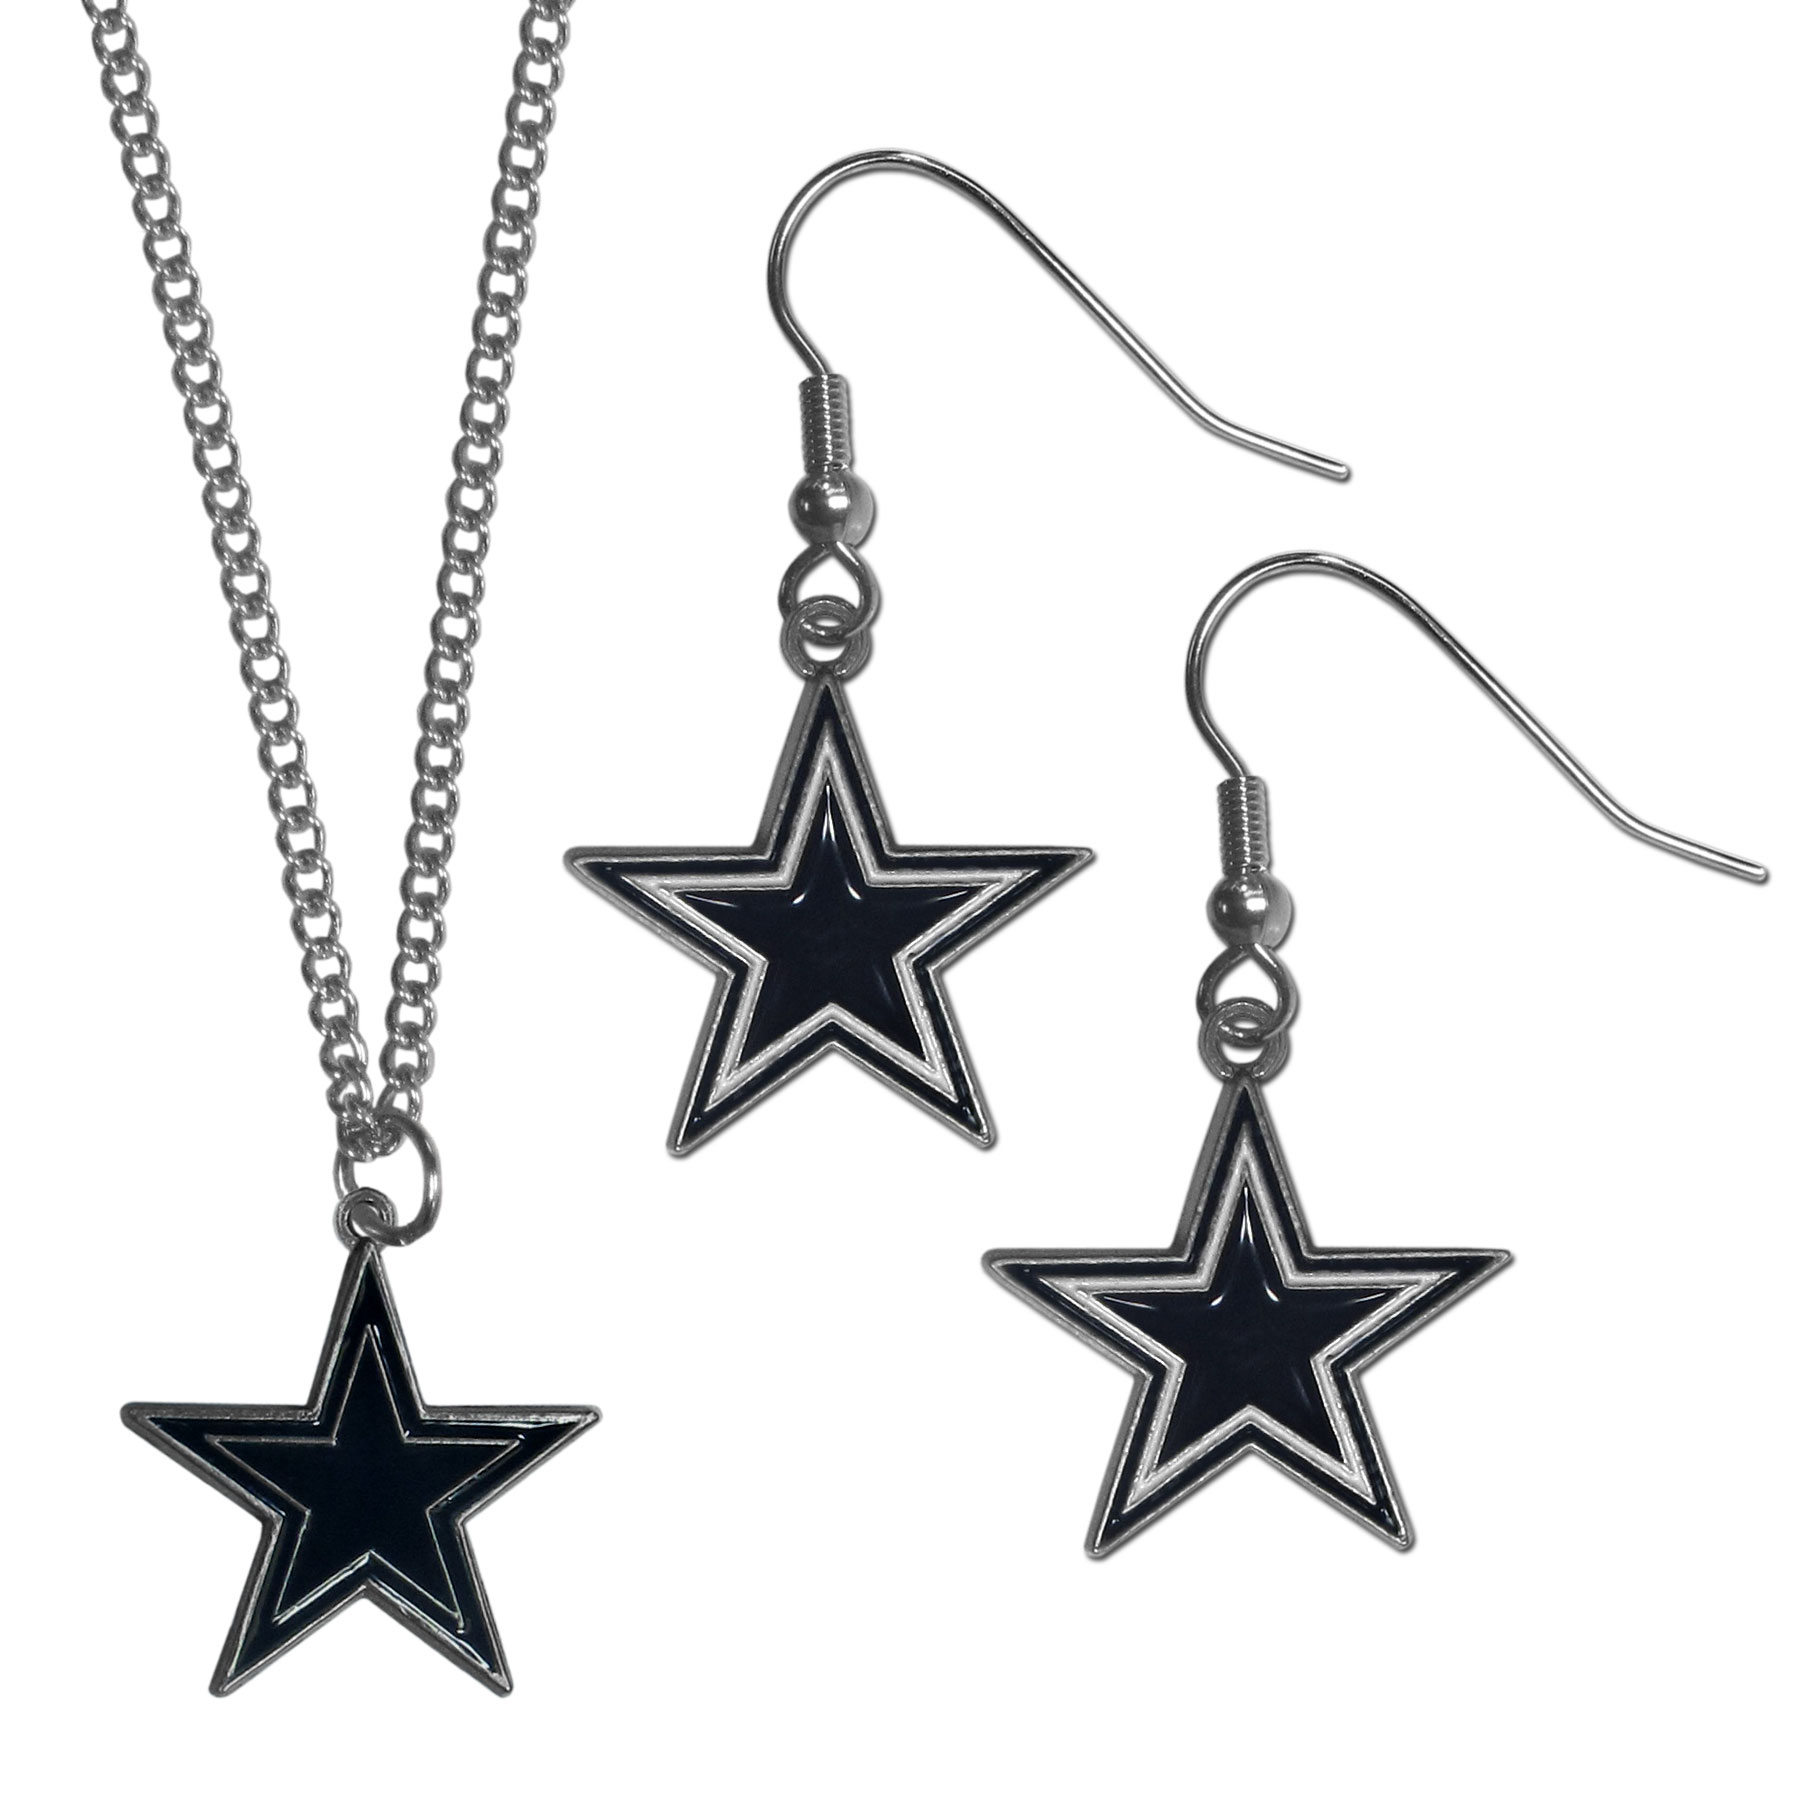 Dallas Cowboys Dangle Earrings and Chain Necklace Set - This classic jewelry set contains are most popular Dallas Cowboys dangle earrings and 22 inch chain necklace. The trendy, dangle earrings are lightweight and feature a fully cast metal team charm with enameled team colors. The matching necklace completes this fashion forward combo and is a spirited set that is perfect for game day but nice enough for everyday.